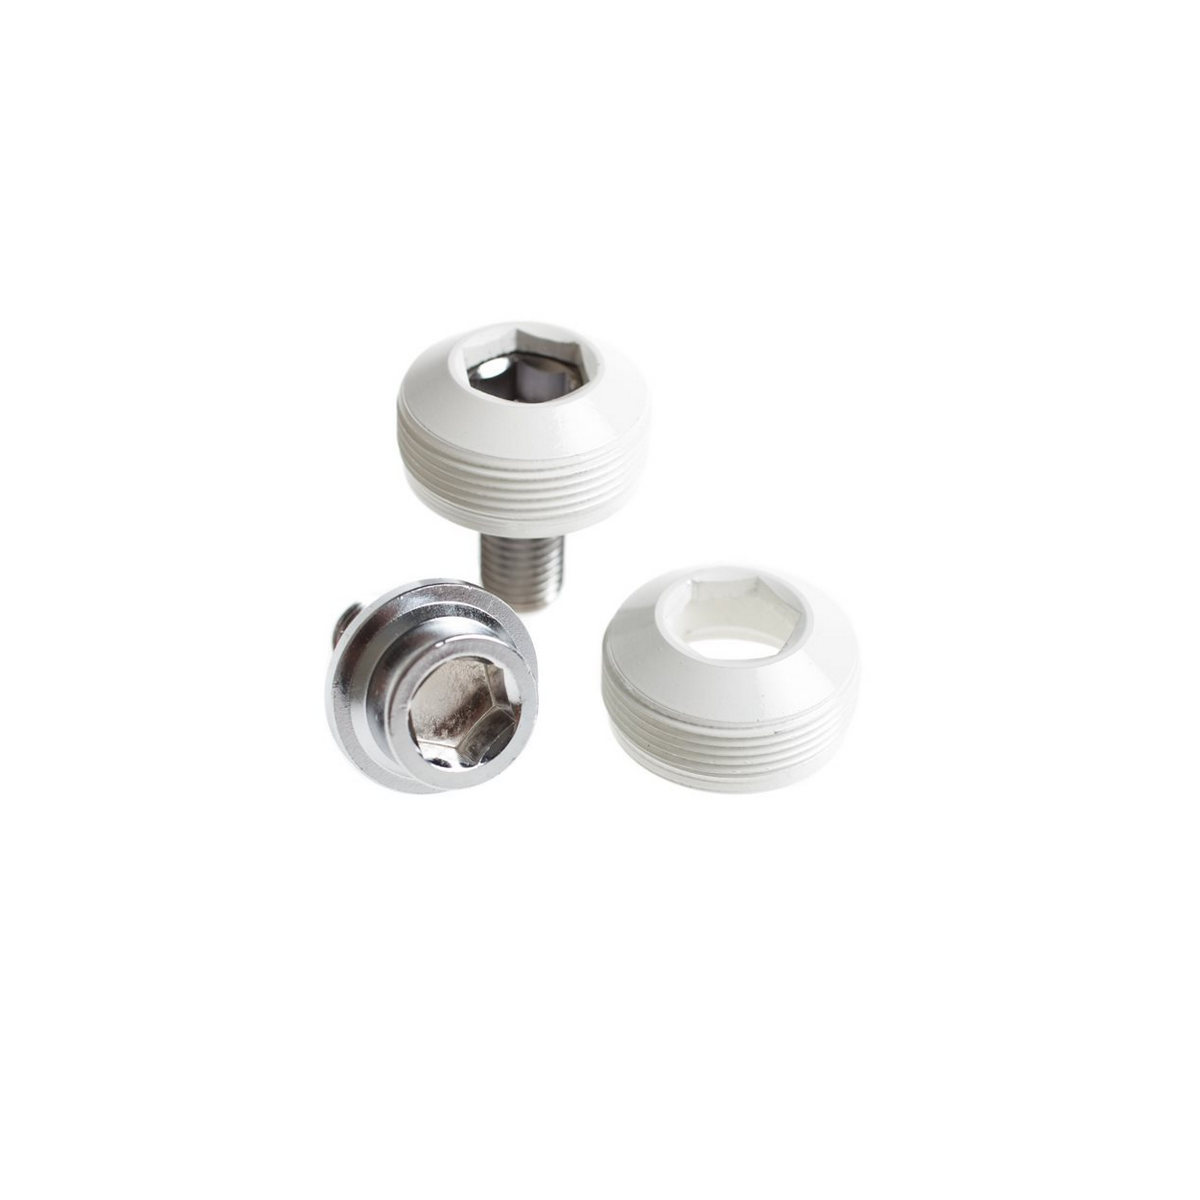 Alloy cup crank bolts with dust cover white